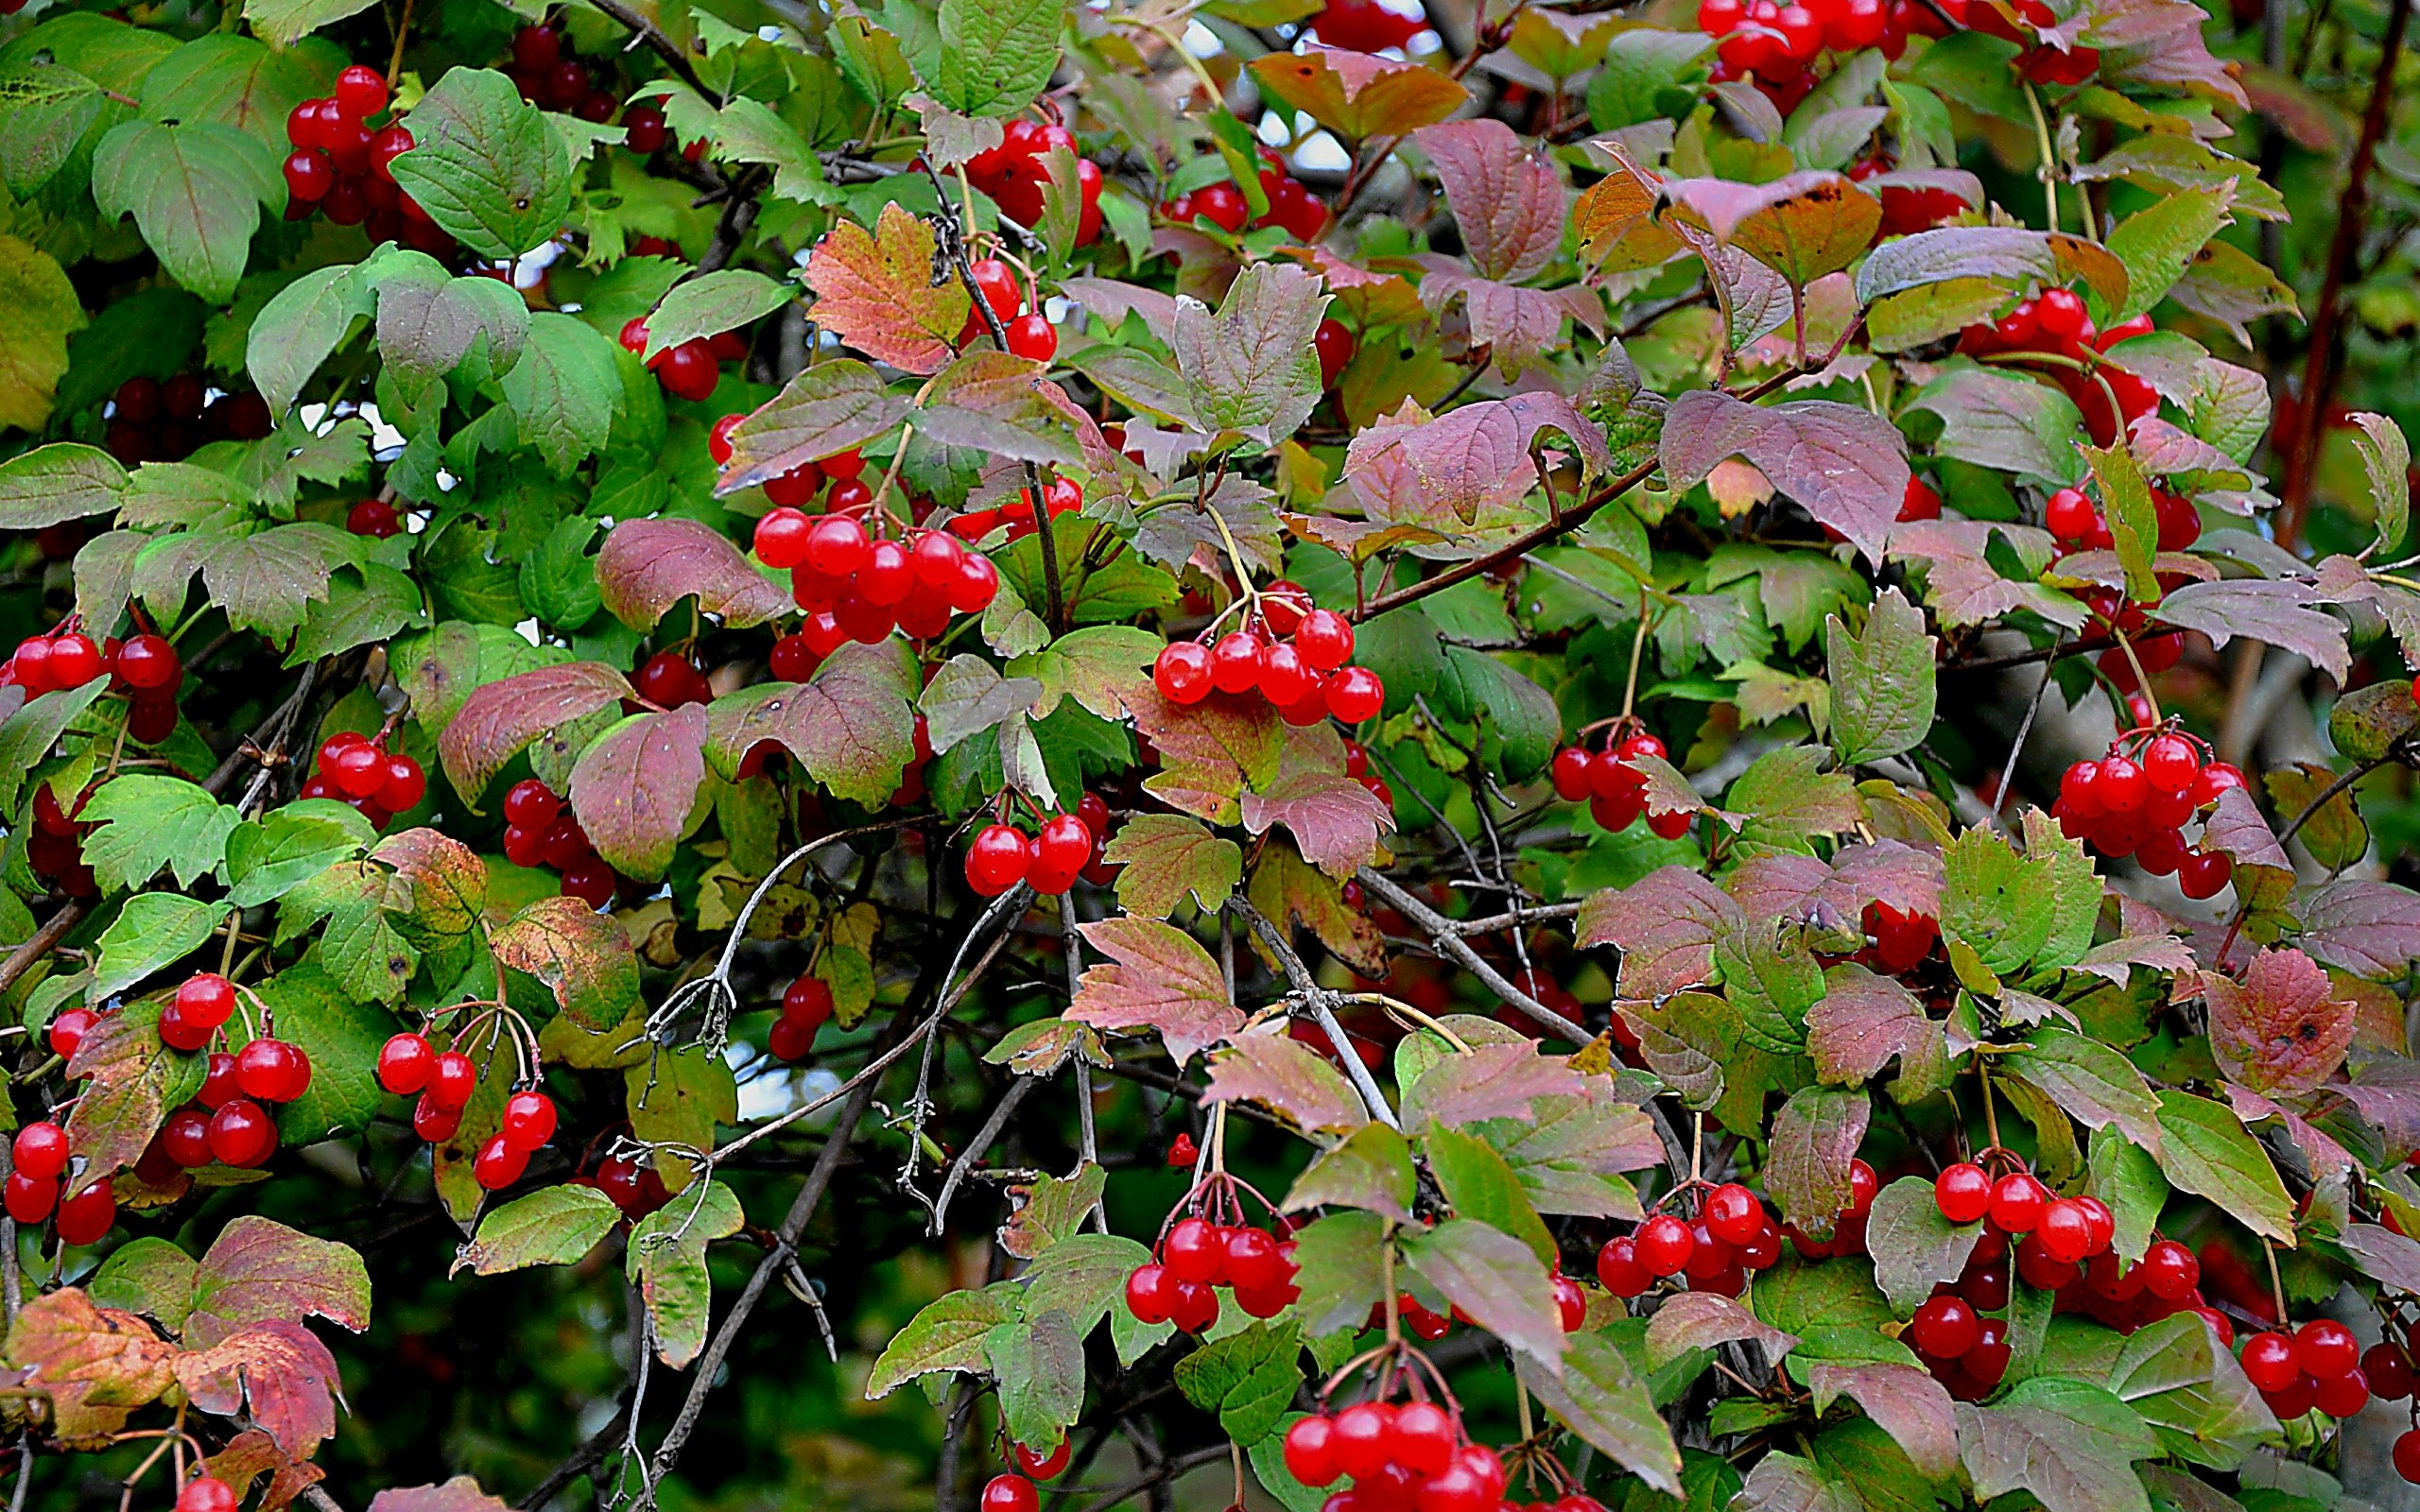 40533 download wallpaper Plants, Berries screensavers and pictures for free